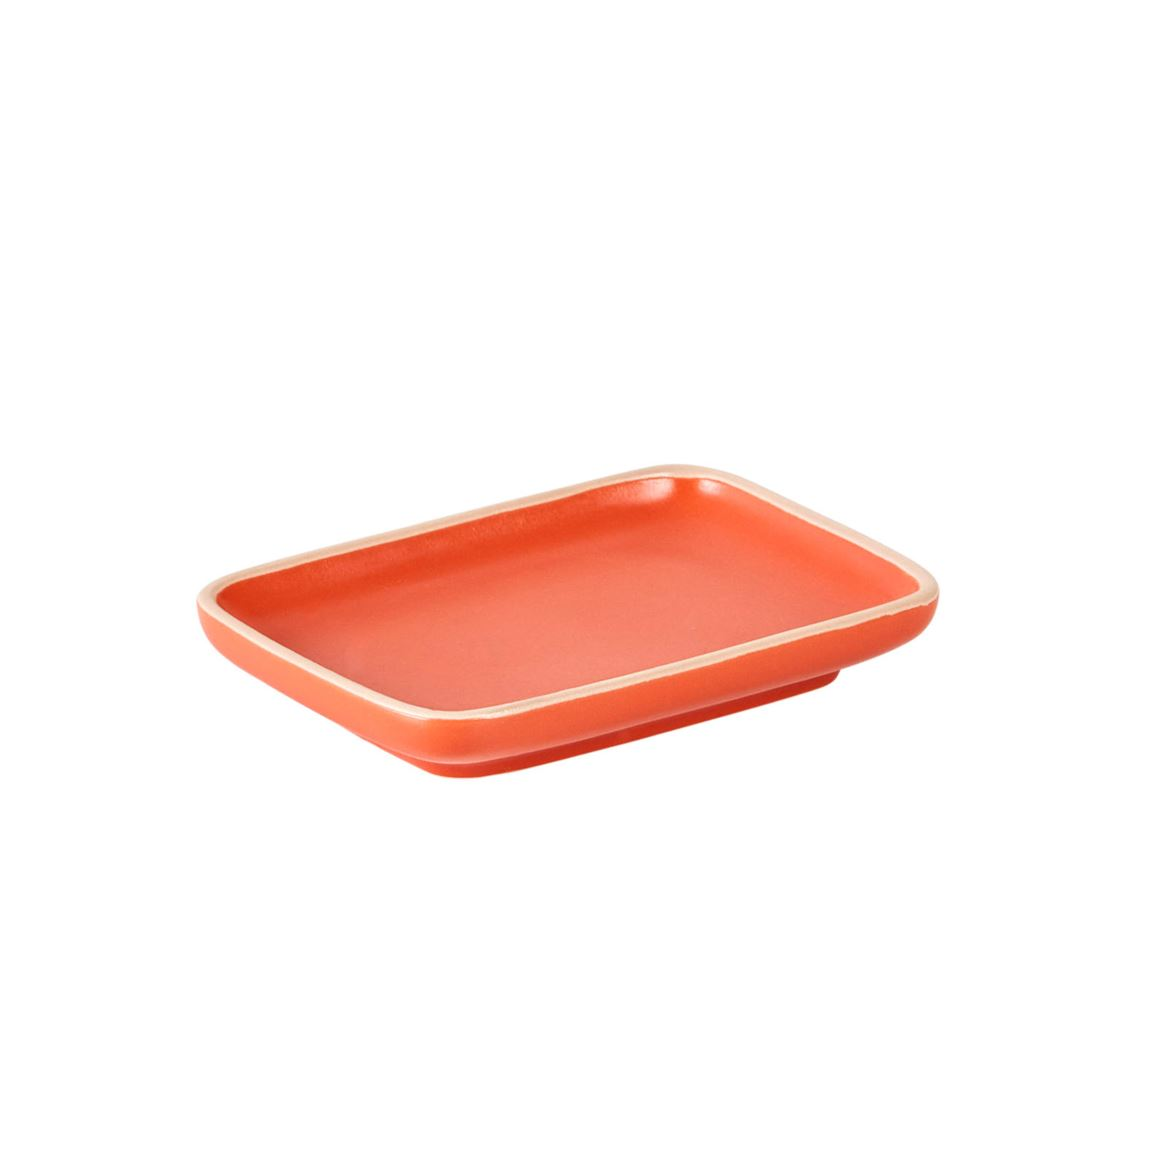 ELEMENTS Piatto arancione W 7 x L 10 cm_elements-piatto-arancione-w-7-x-l-10-cm